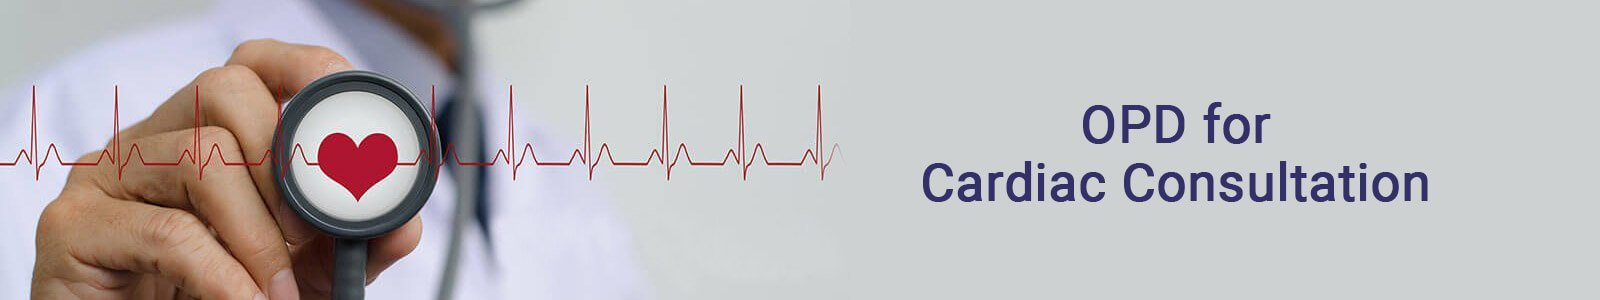 OPD for Cardiac Consultation